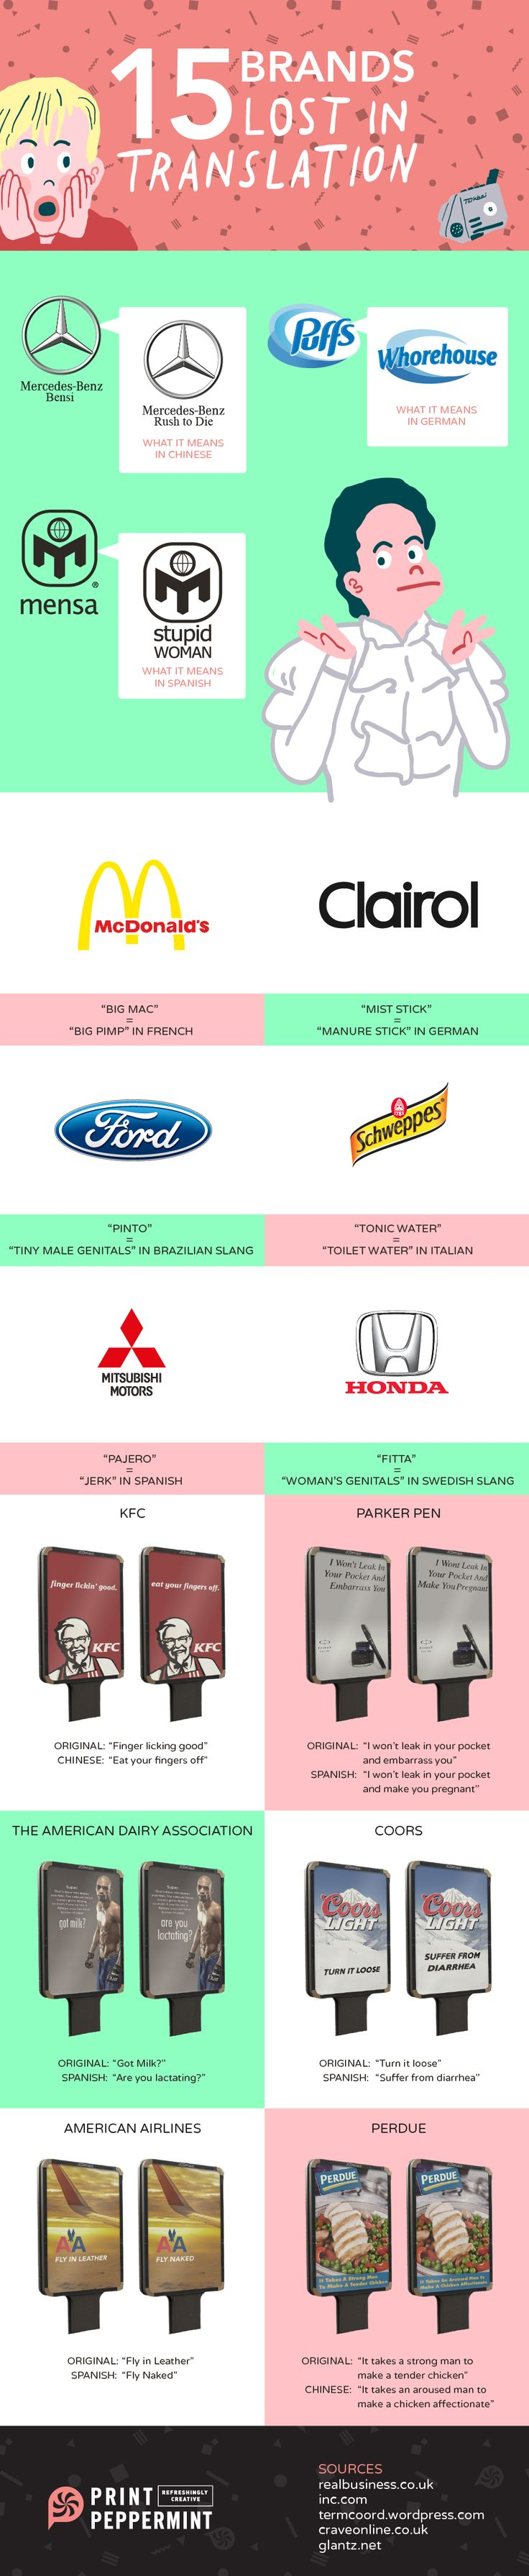 15 Brands Lost in Translation #Infographic #Business